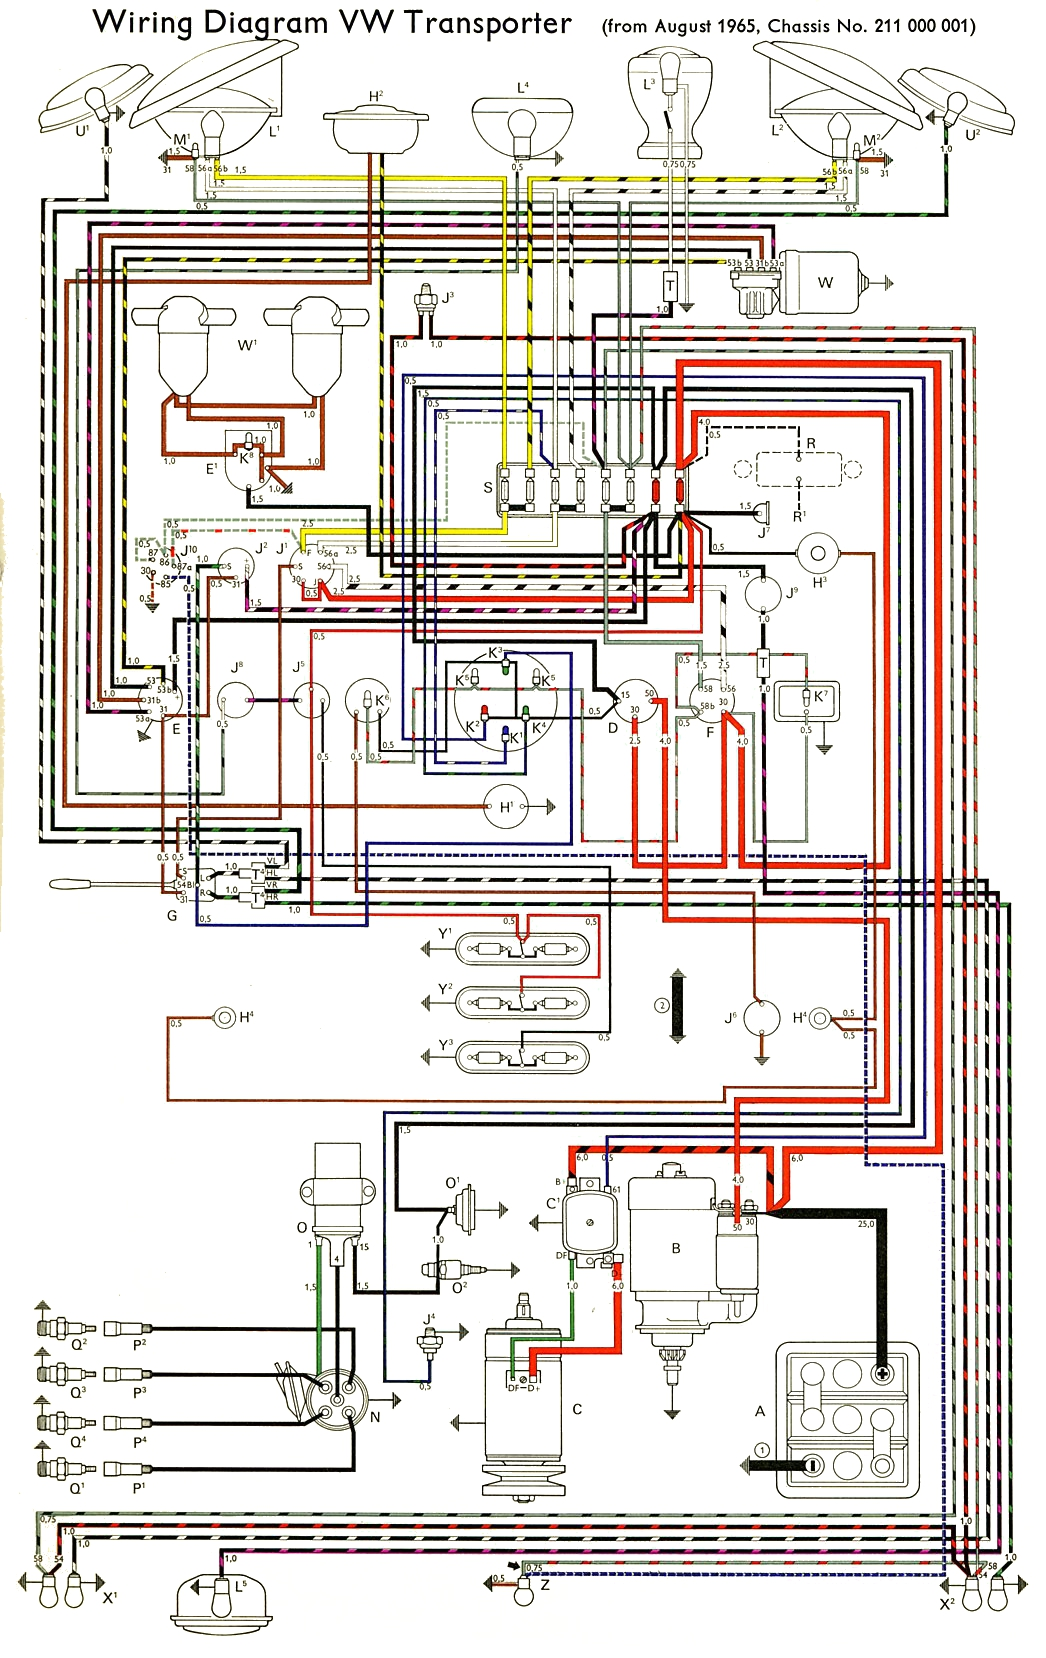 bus_66 wiring diagram vw transporter the samba bay pride pinterest vw t4 electric window wiring diagram at gsmx.co